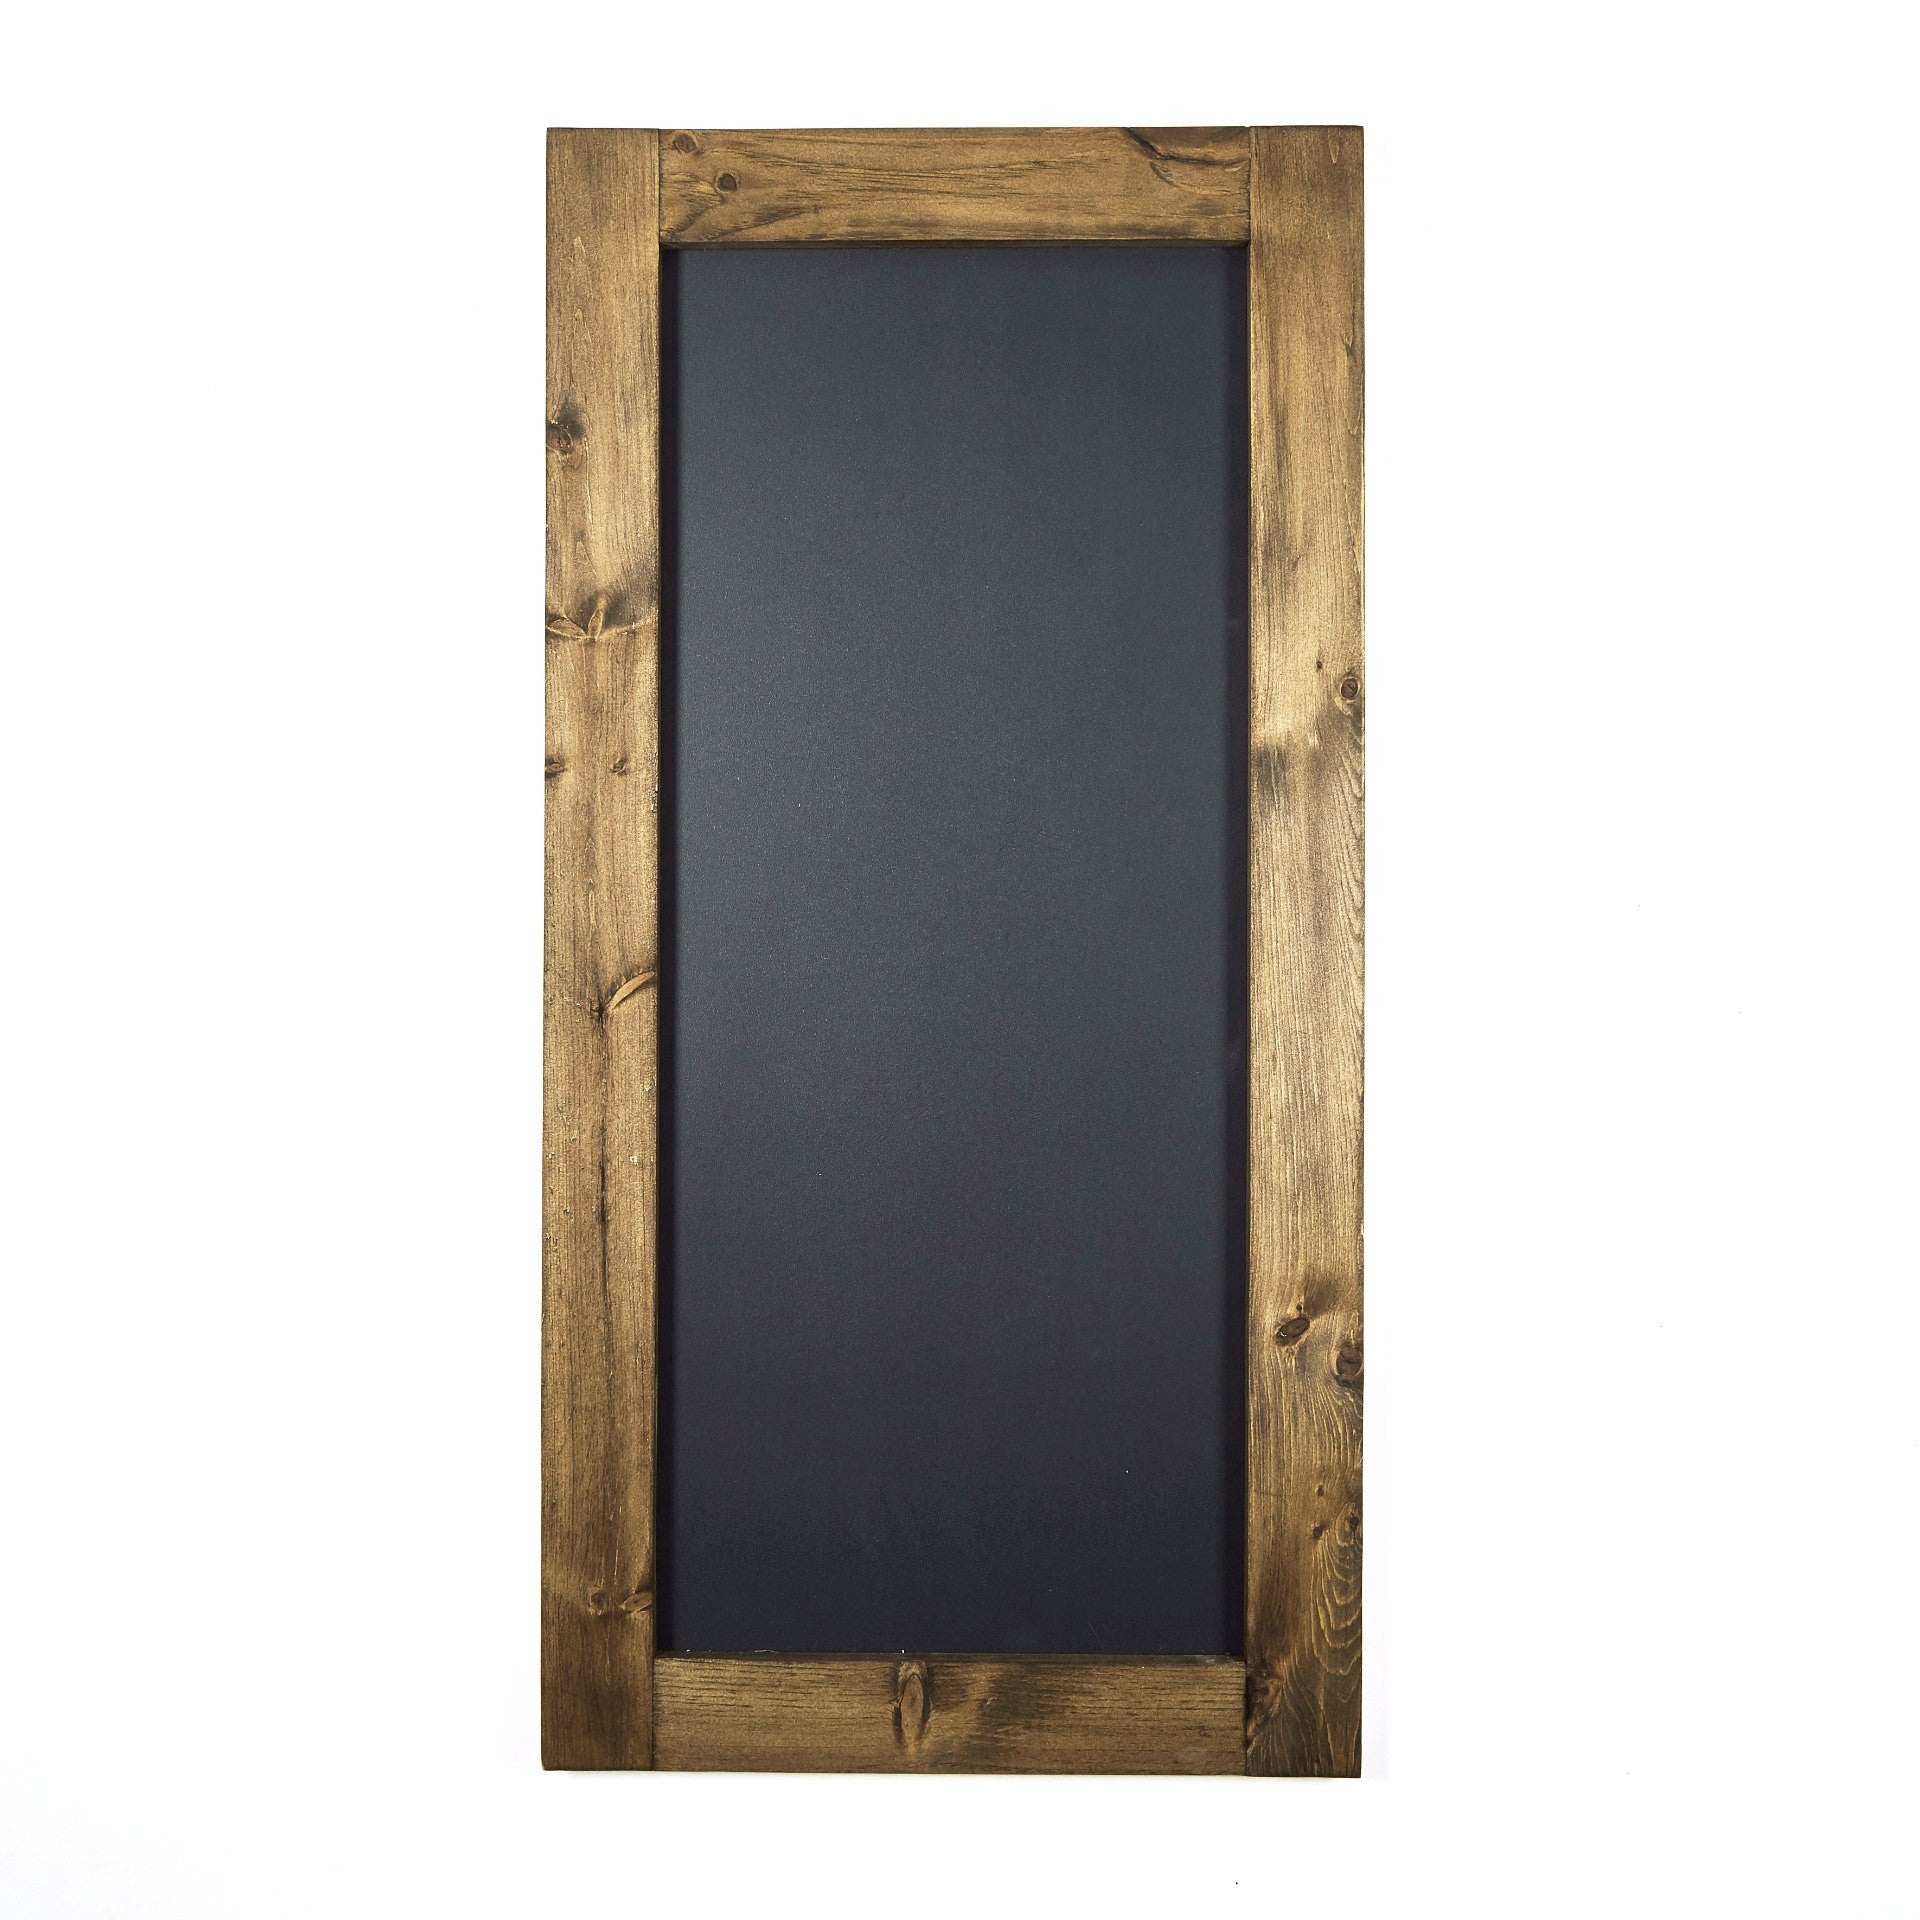 Long Chalkboard with Walnut Stained Pine Frame | 18"|1920|1920|?|en|2|17e675478890cab77cce96647cf852cf|False|UNLIKELY|0.3399525284767151